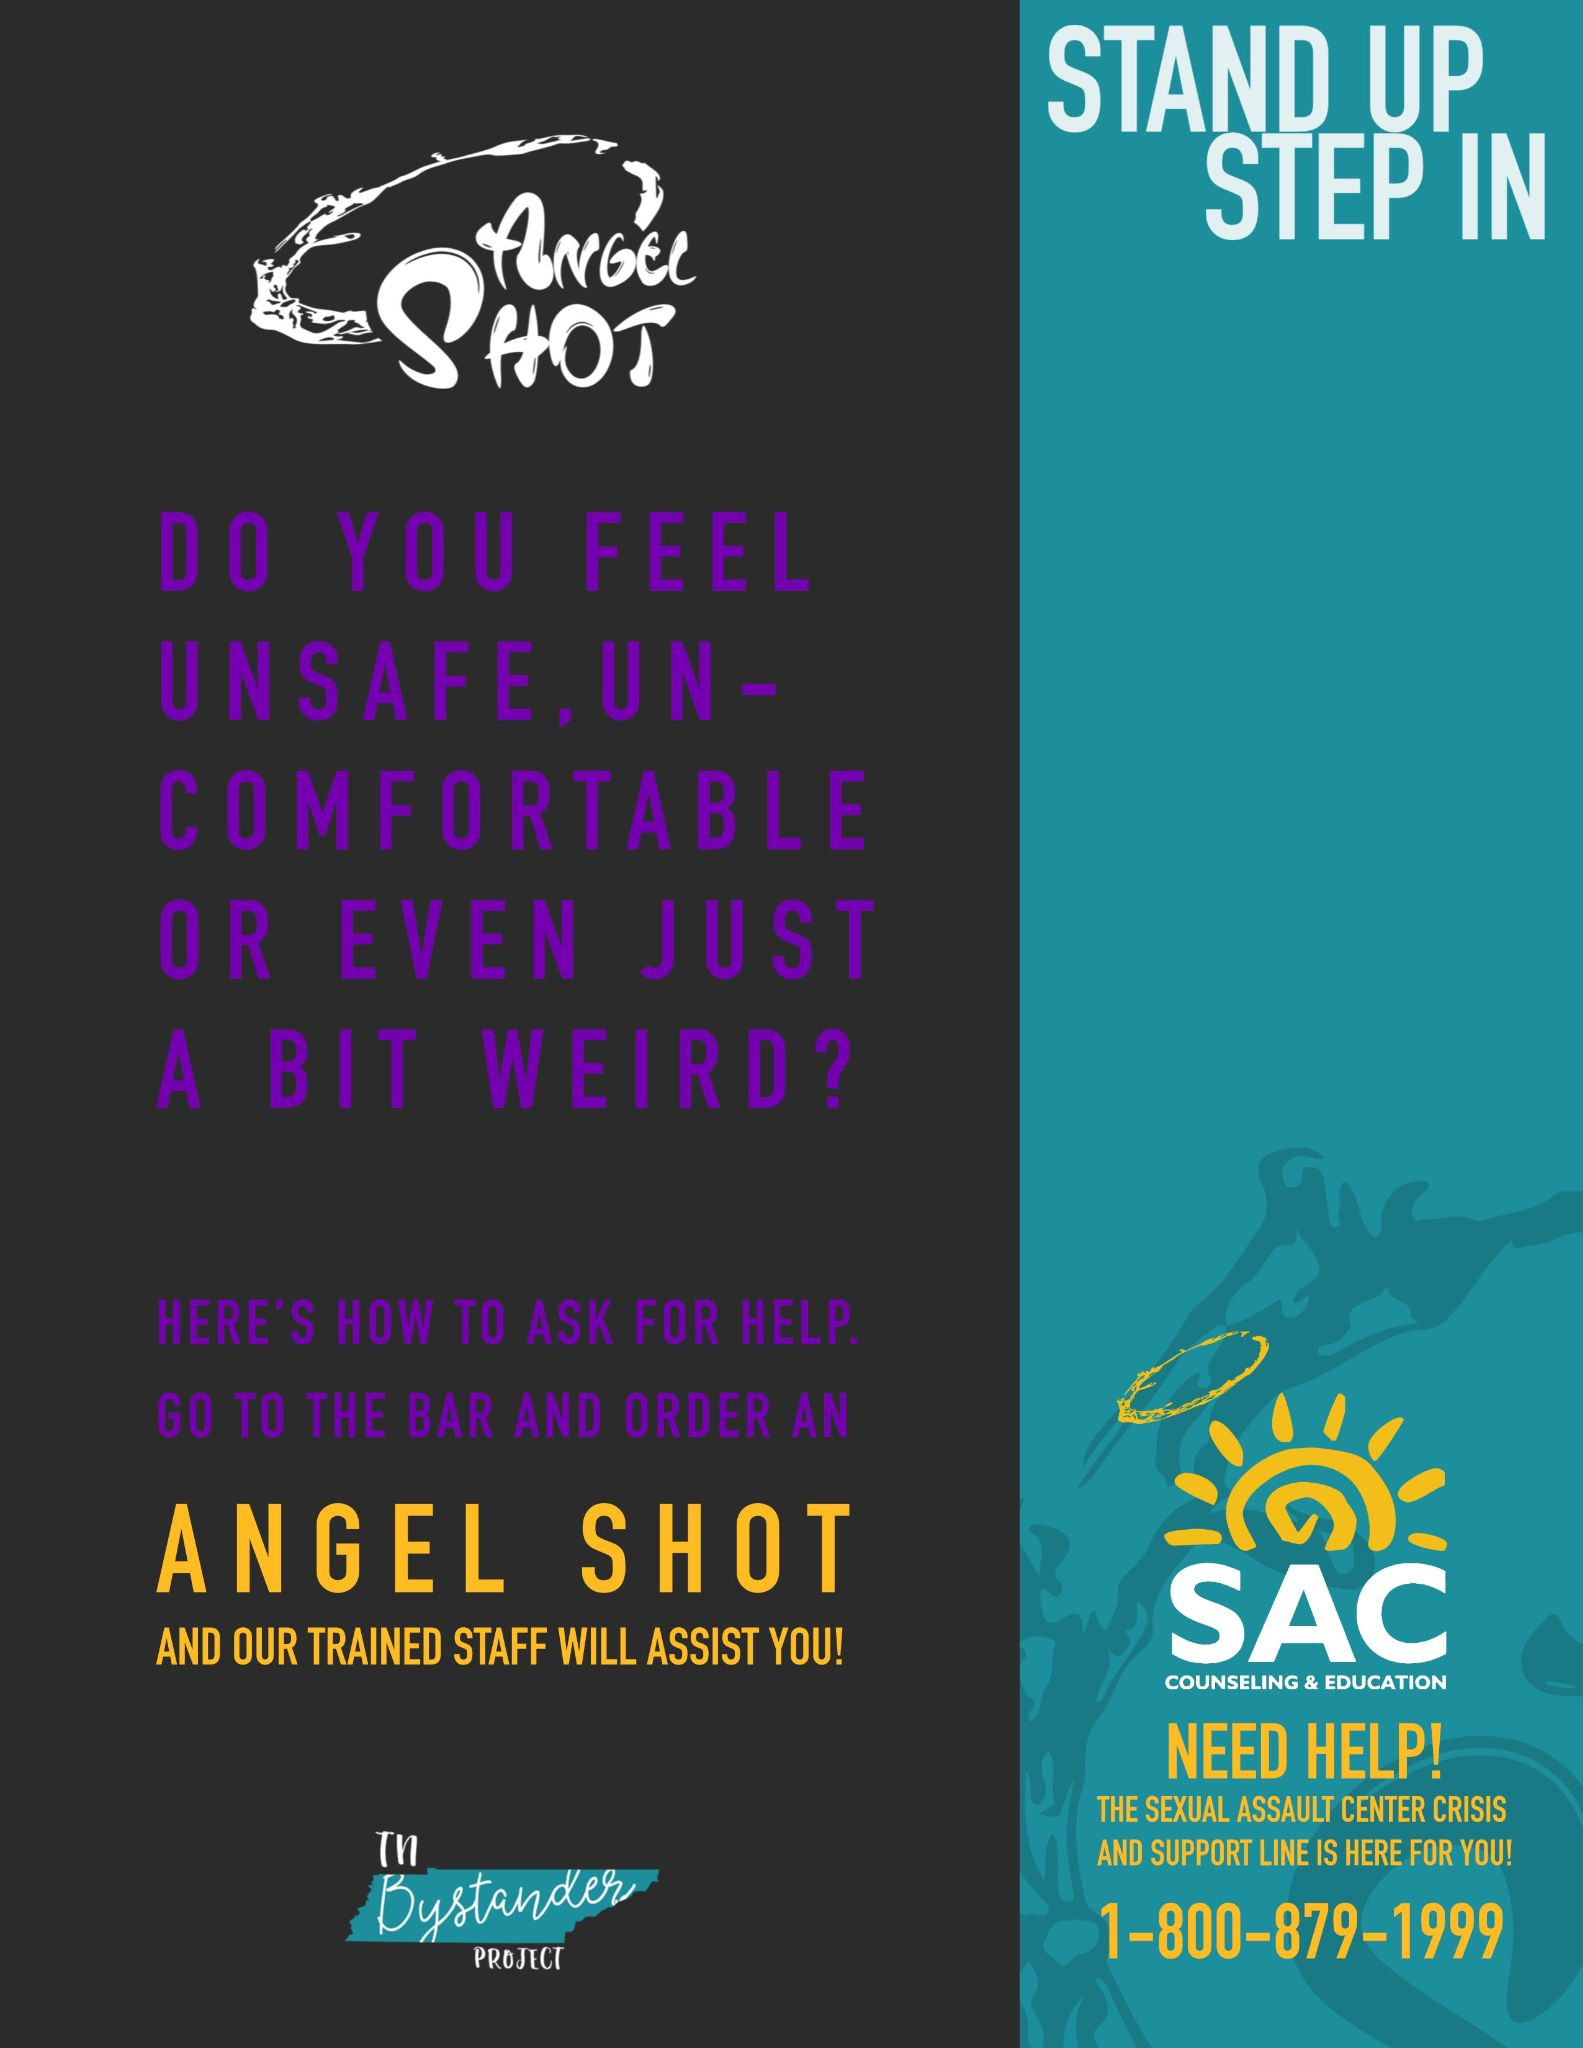 Poster for the Angel Shot from a bar in Nashville, Tennessee.